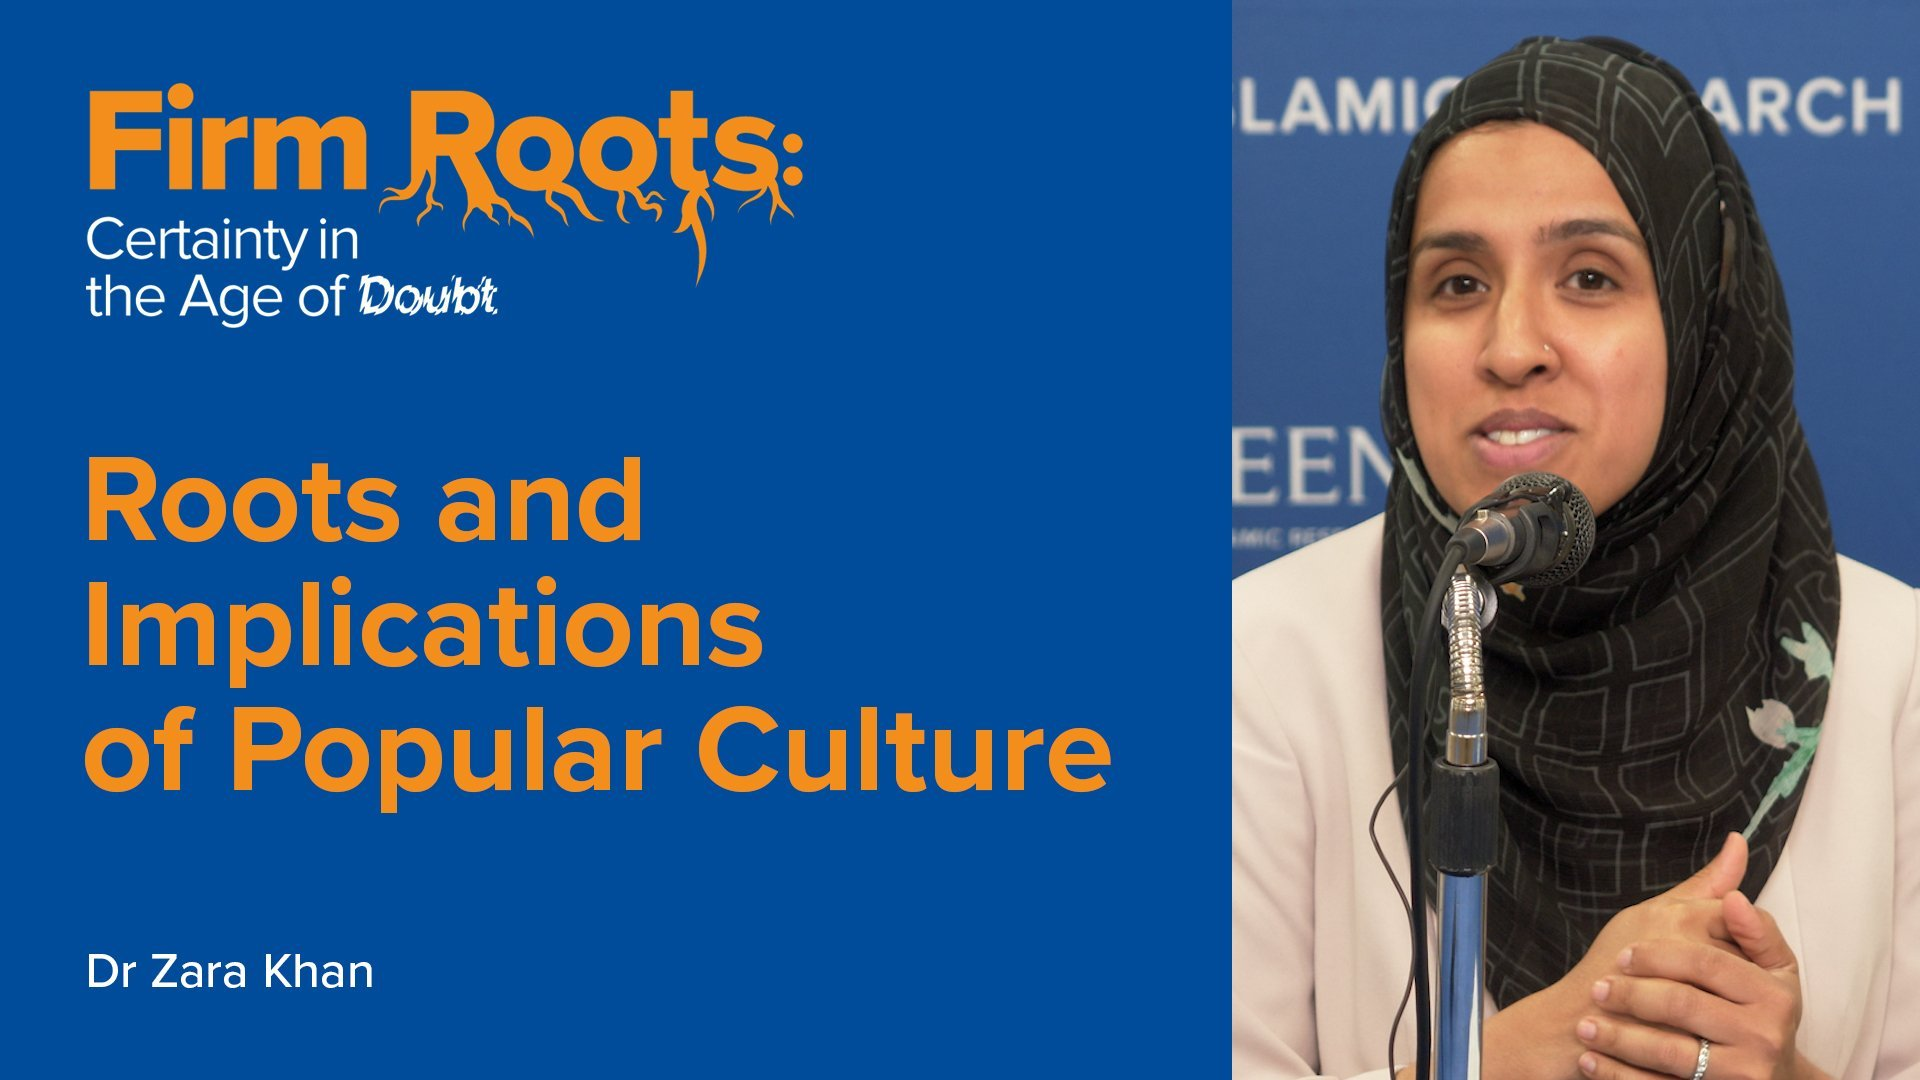 Roots and Implications of Pop Culture | Firm Roots